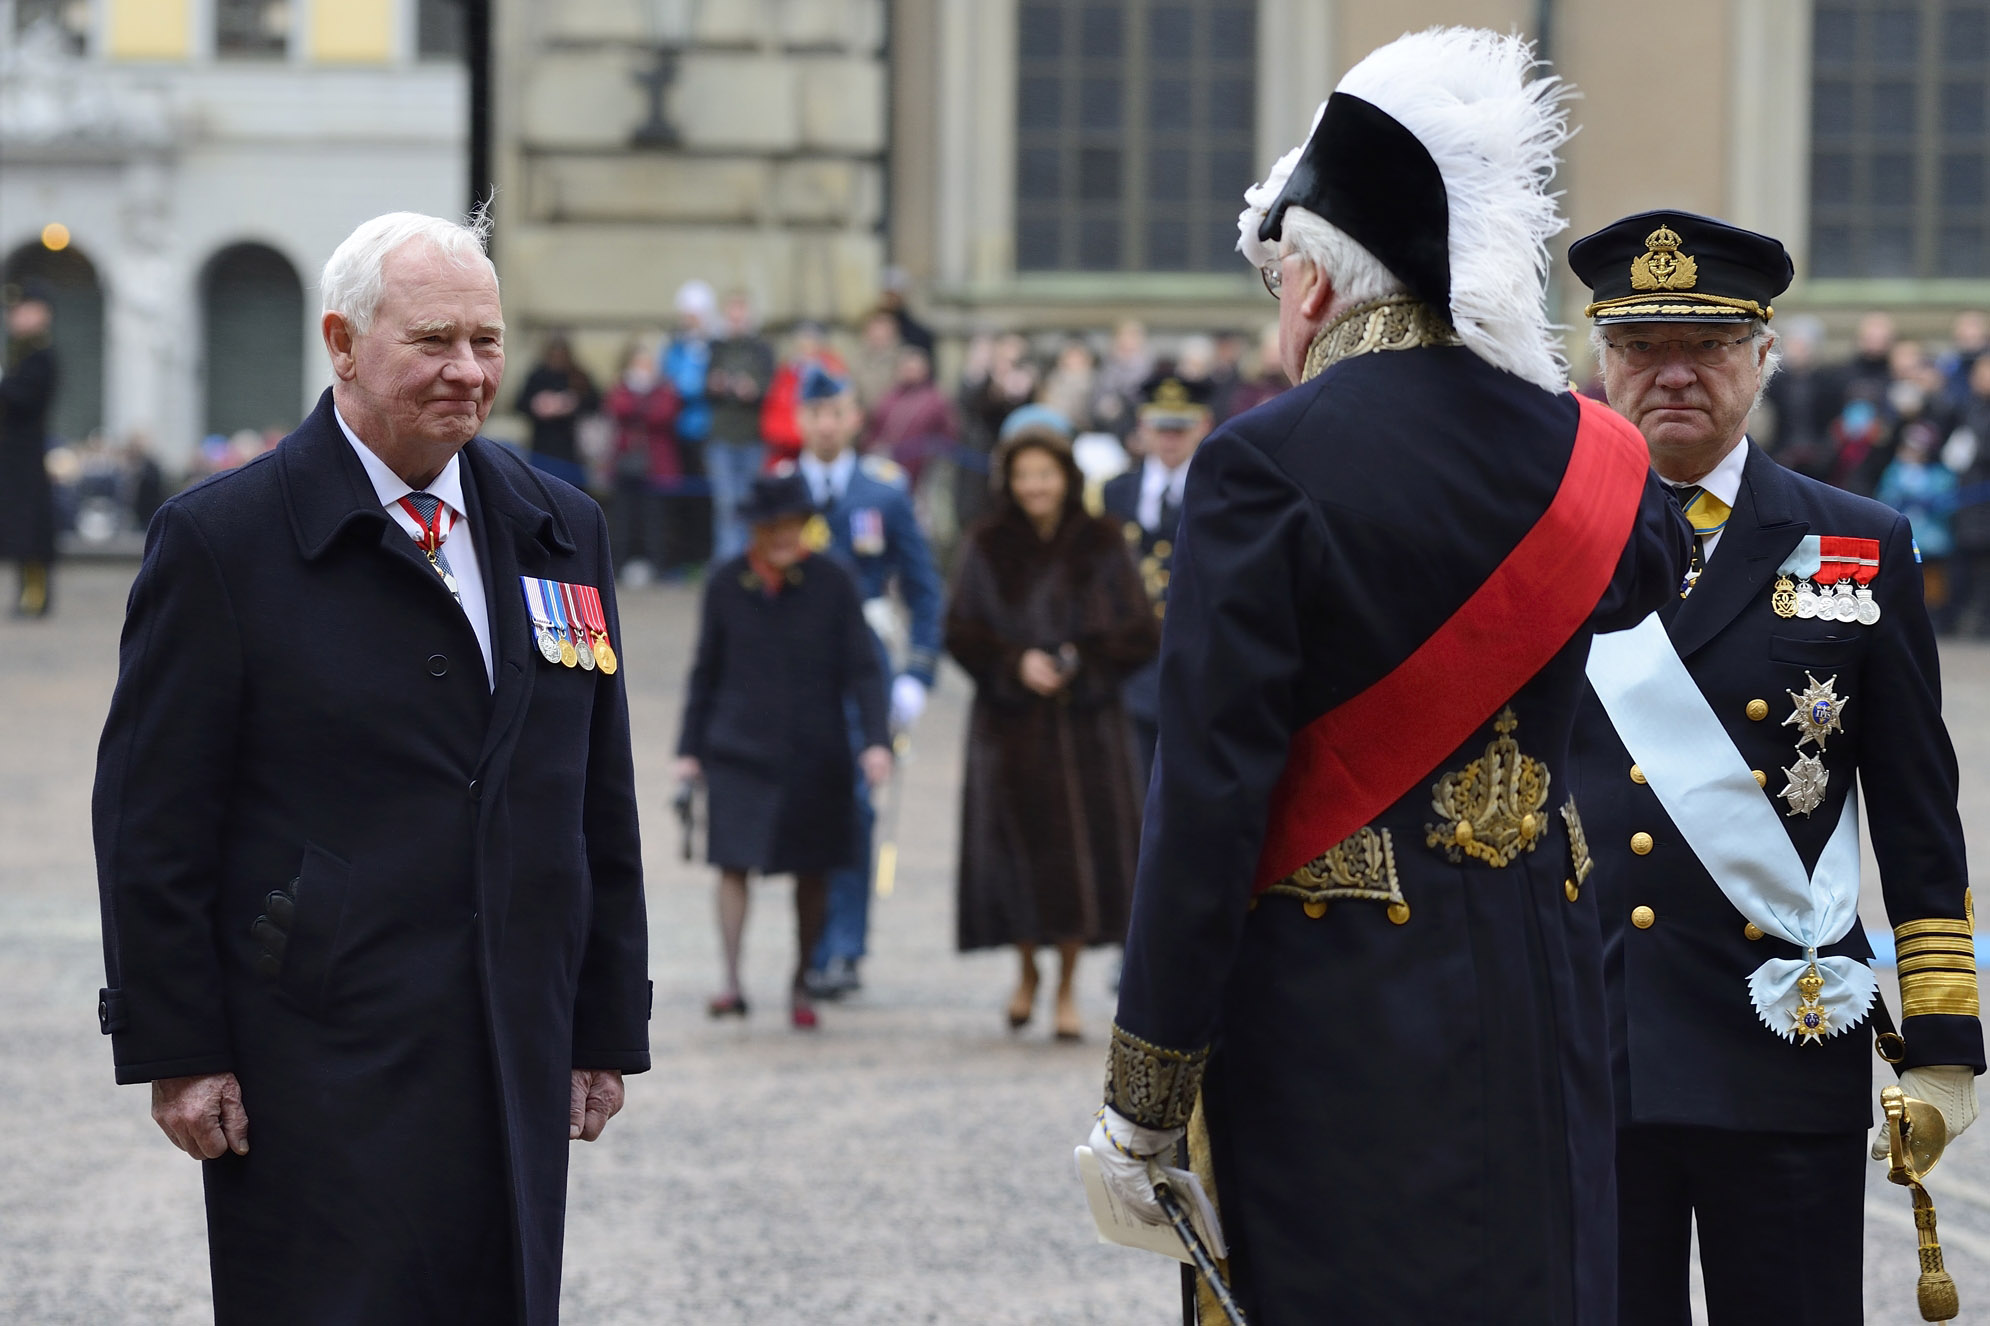 Upon arrival at the Royal Palace, His Excellency received military honour.